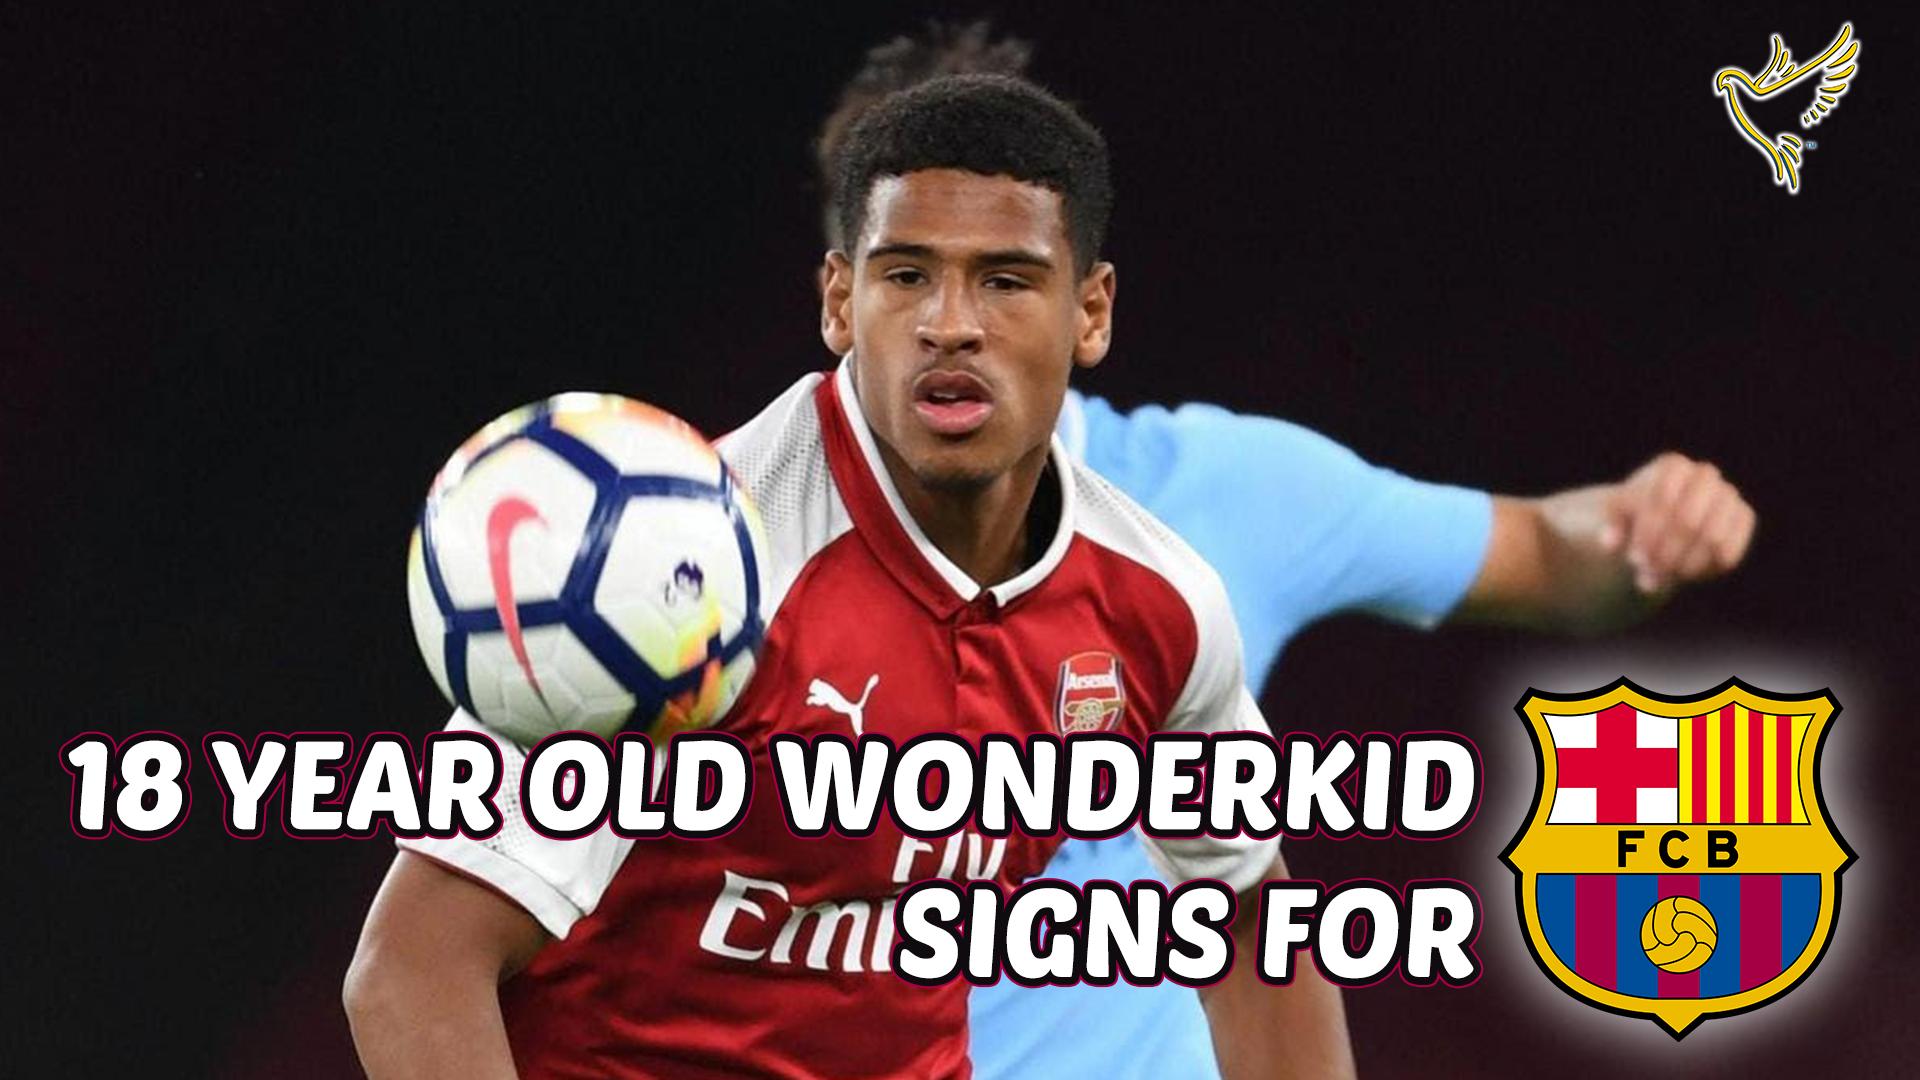 18 Year Old Arsenal Wonderkid 'MARCUS MCGUANE' Signs For BARCELONA FC!!